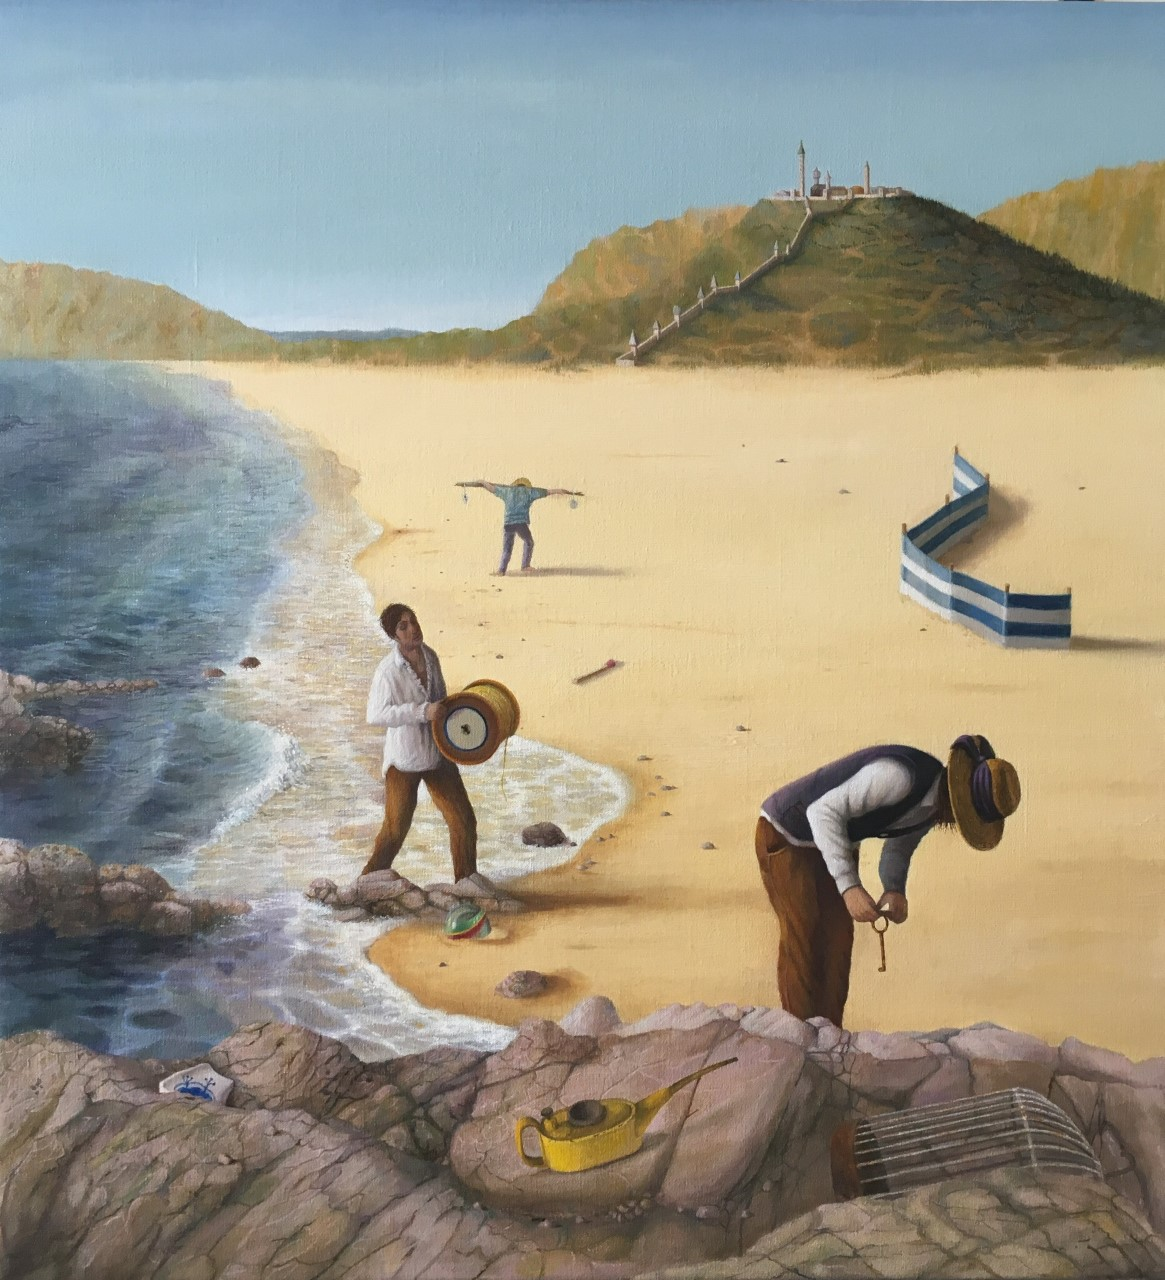 "'Beachcombing', 2018, oil on linen, 26"" x 24"""